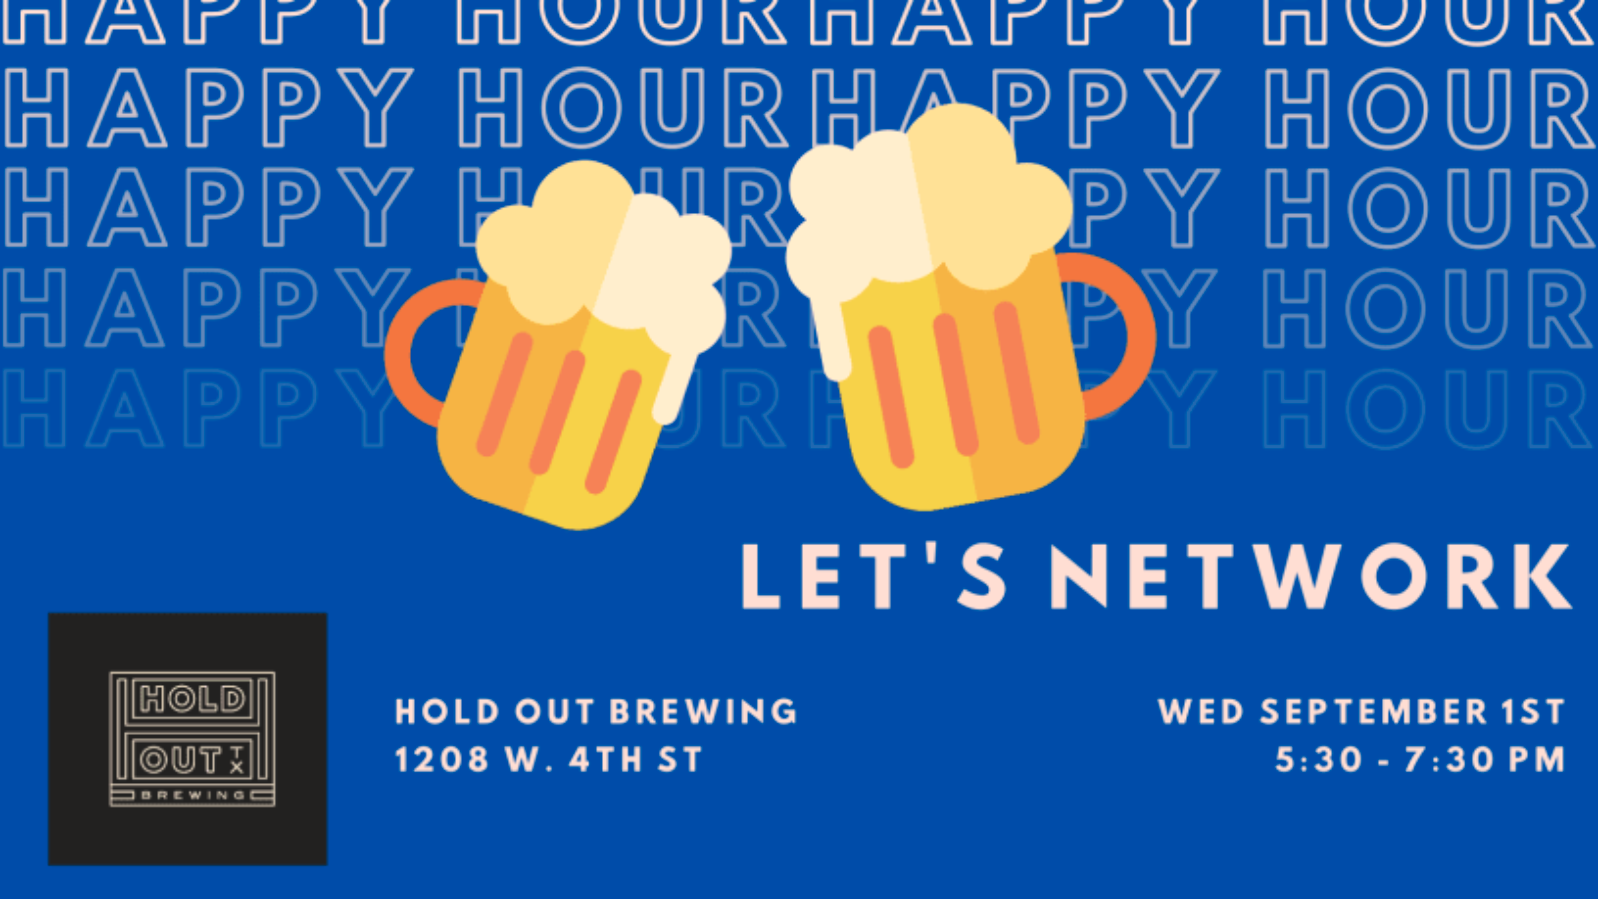 September 2021 Network Night Invite - Blue Background with to beer mugs with Let's Network text and time, date, location